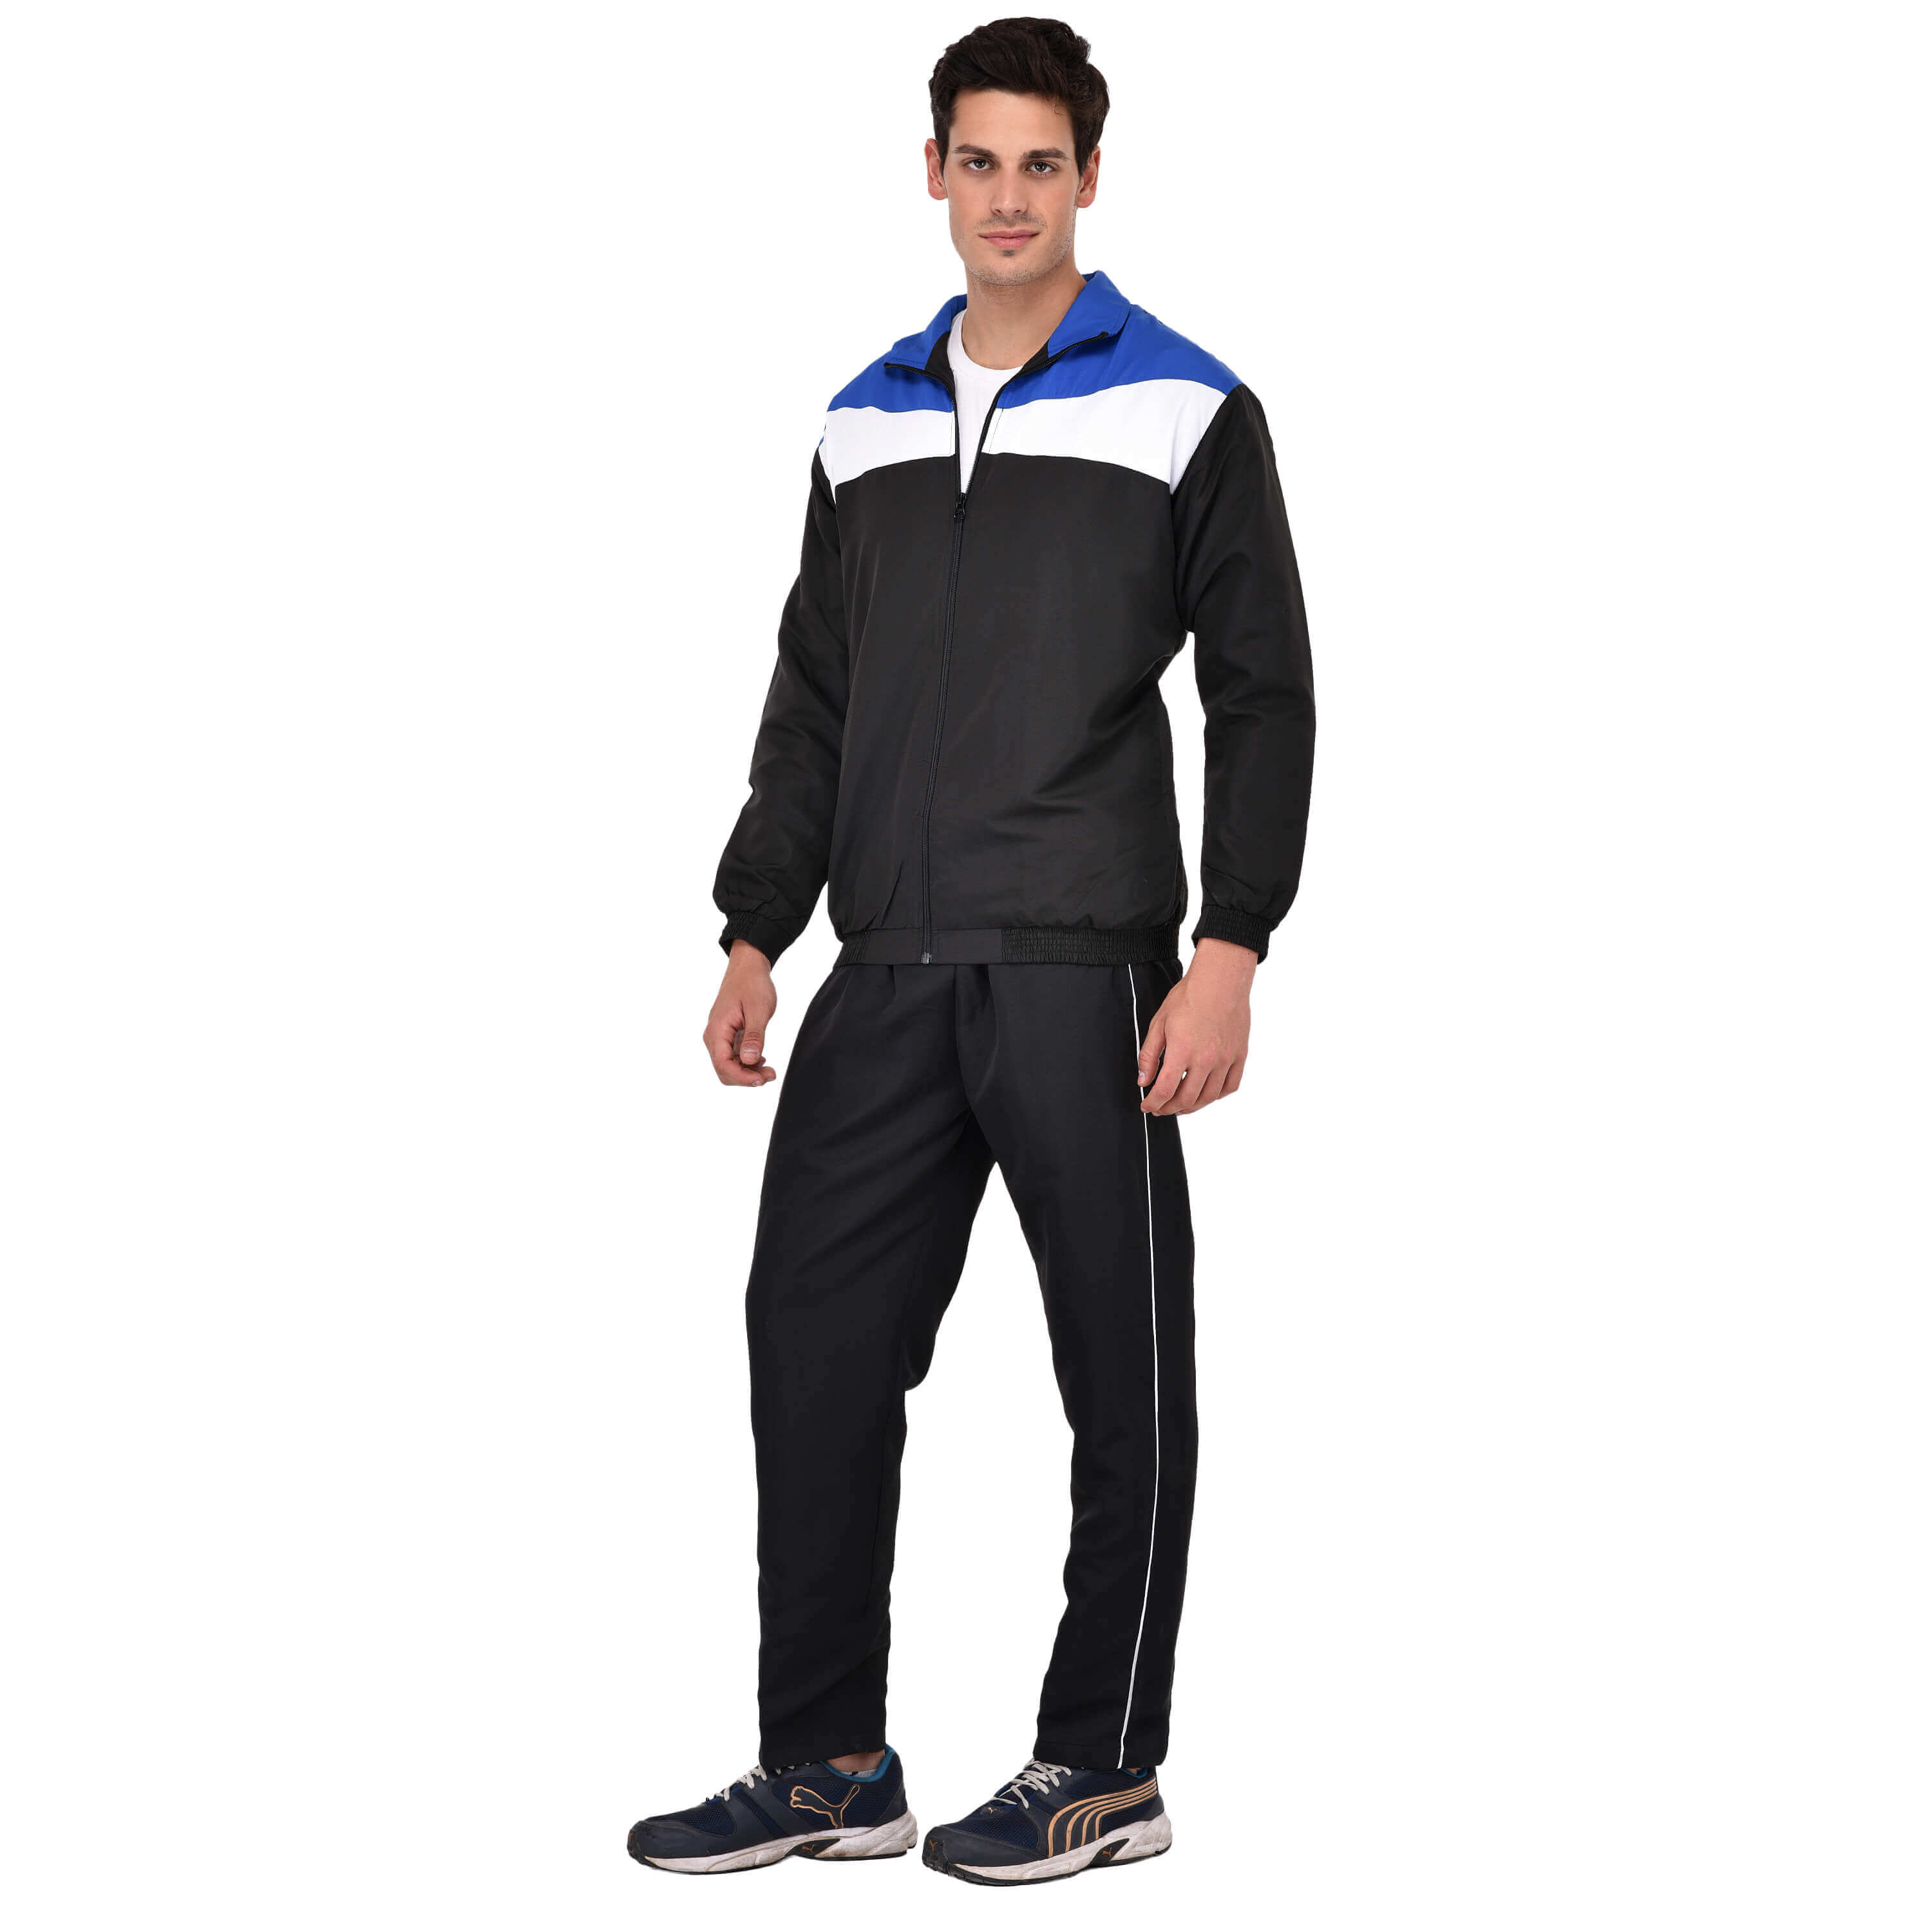 Tracksuit Set Manufacturers in Nanded